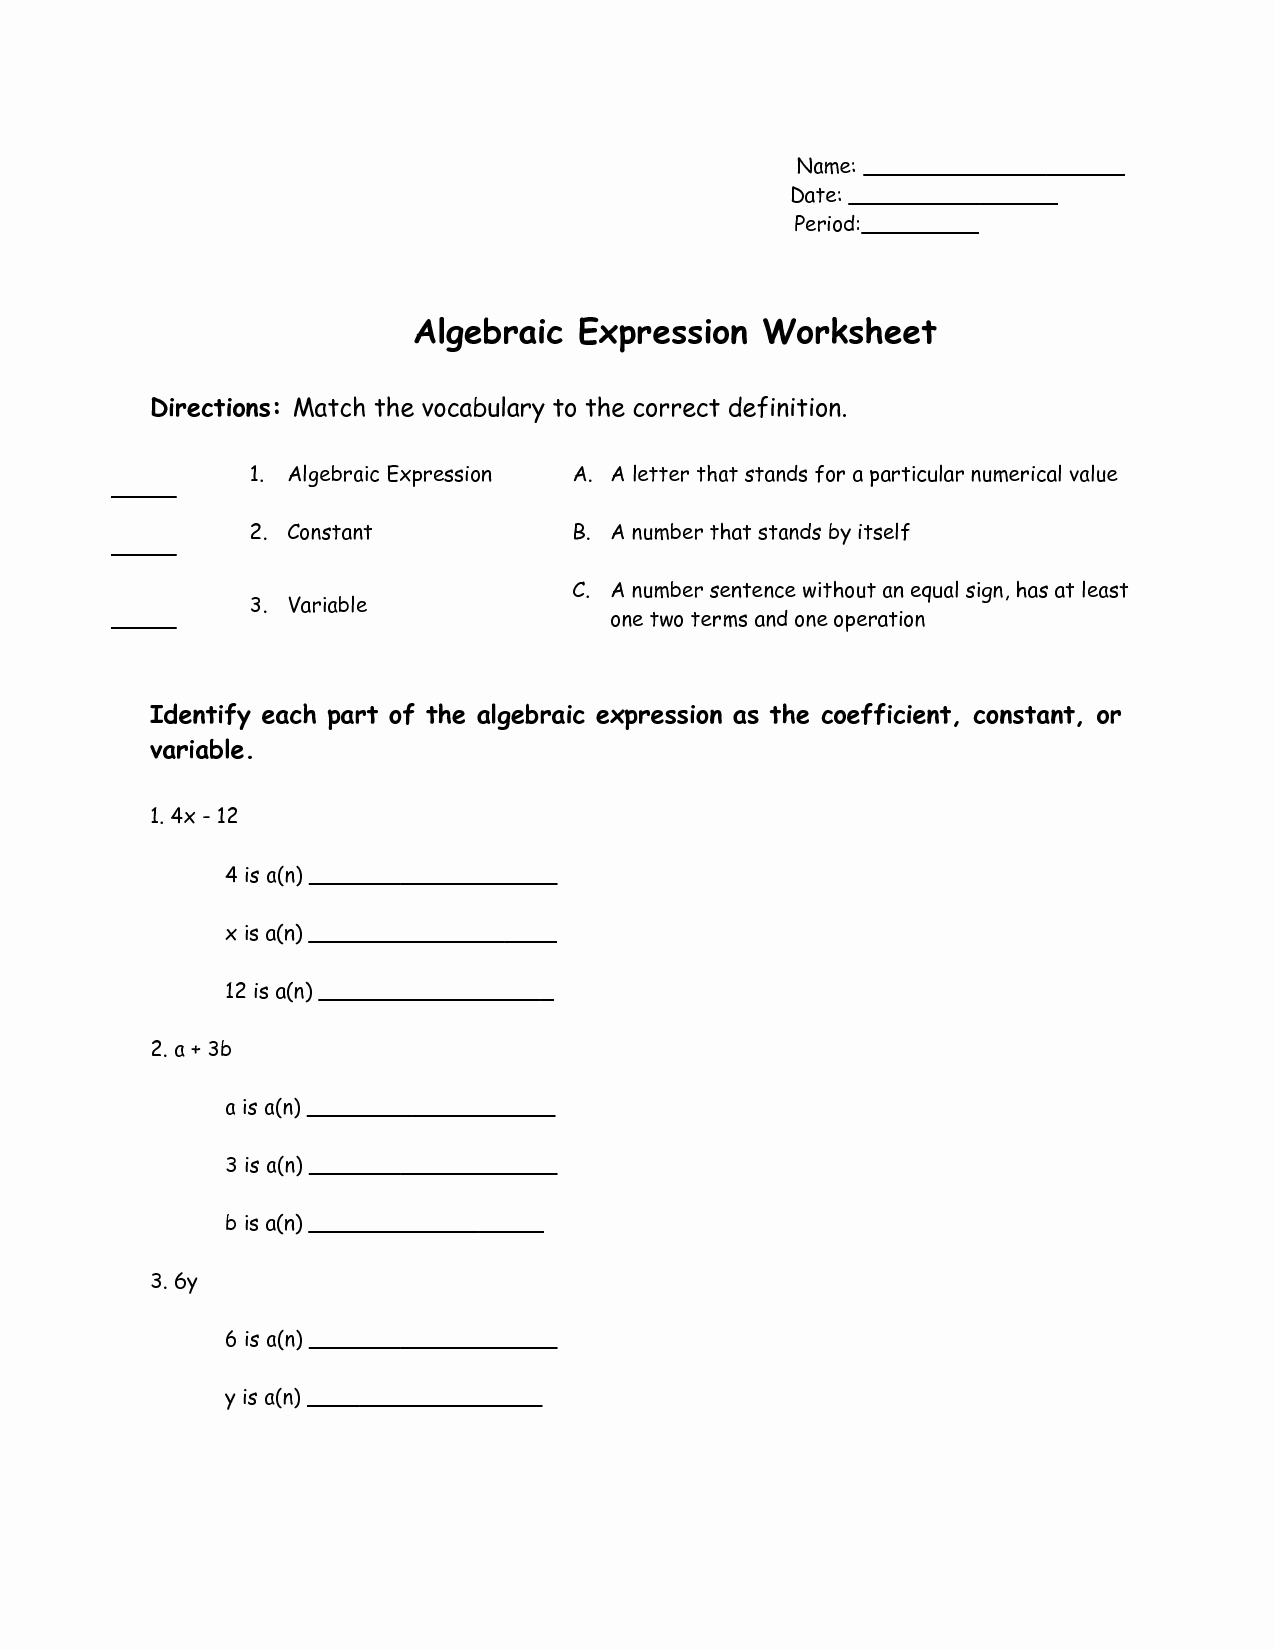 Writing Algebraic Expressions Worksheet Fresh Translating Verbal Sentences Into Equations Worksheet